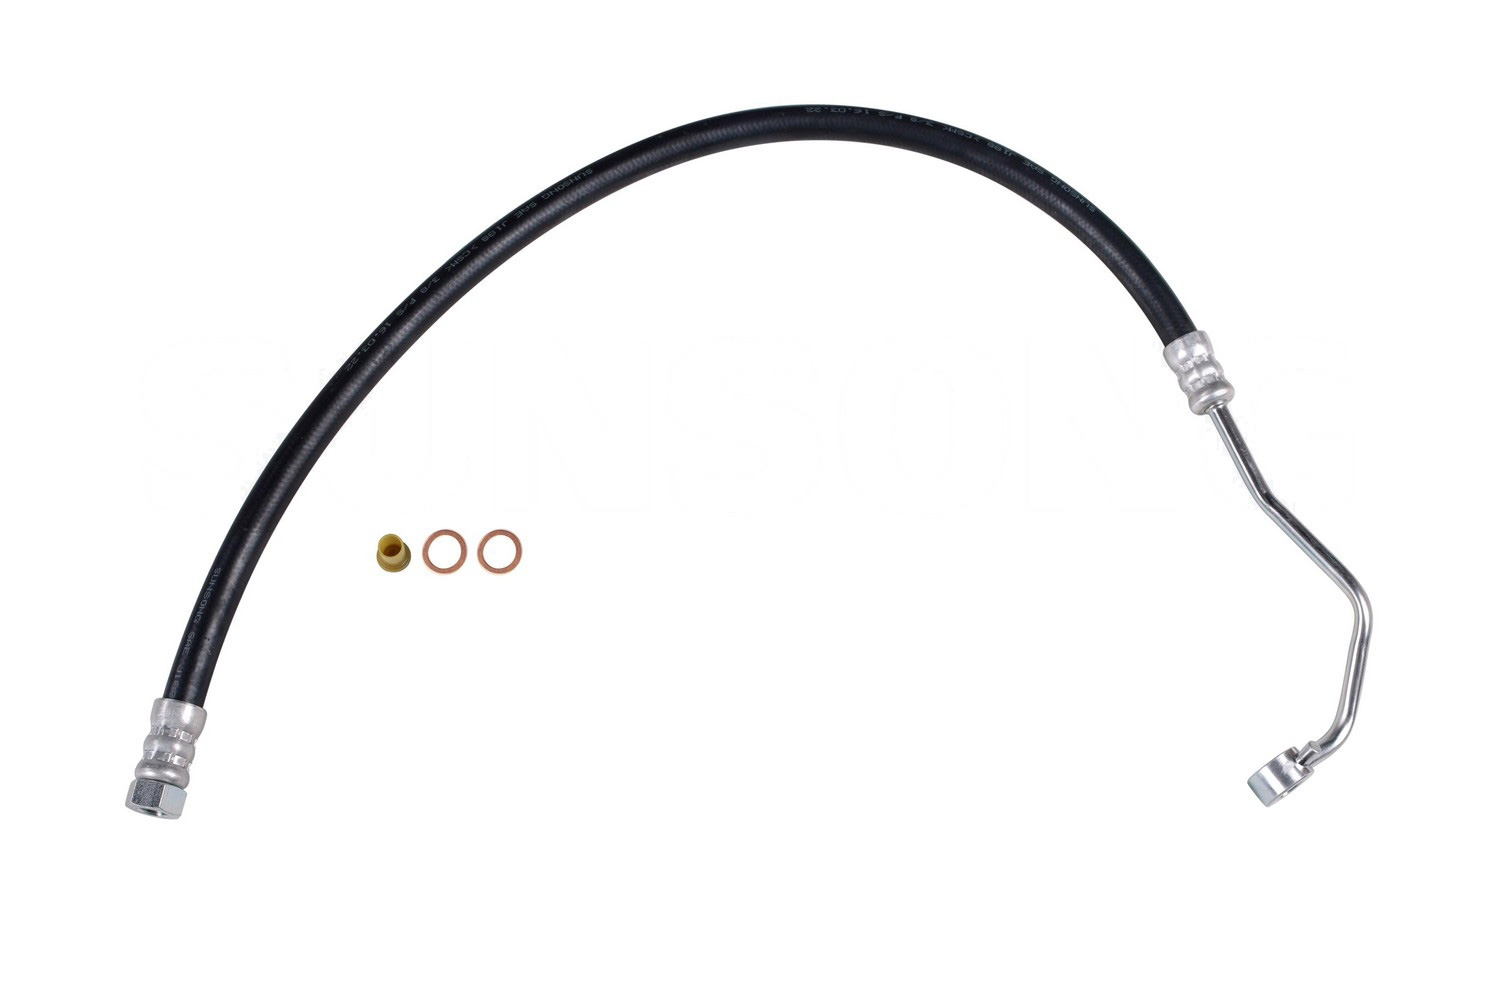 2006 Hyundai Accent Steering Pressure Line Hose Assembly